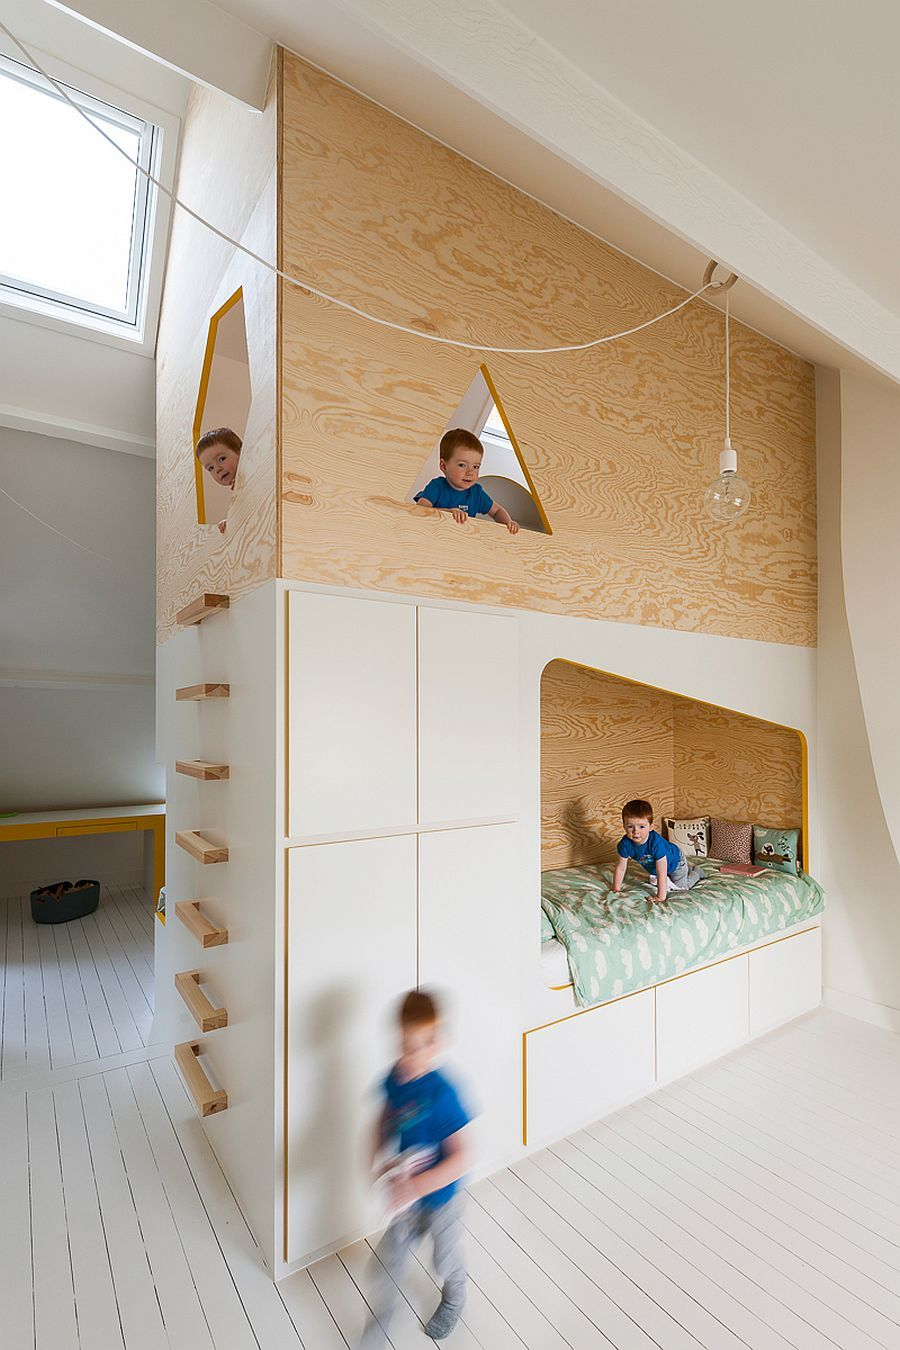 Bespoke Brilliance: Twin Bed Wall In Kidsu0027 Room With Loft Play Zone